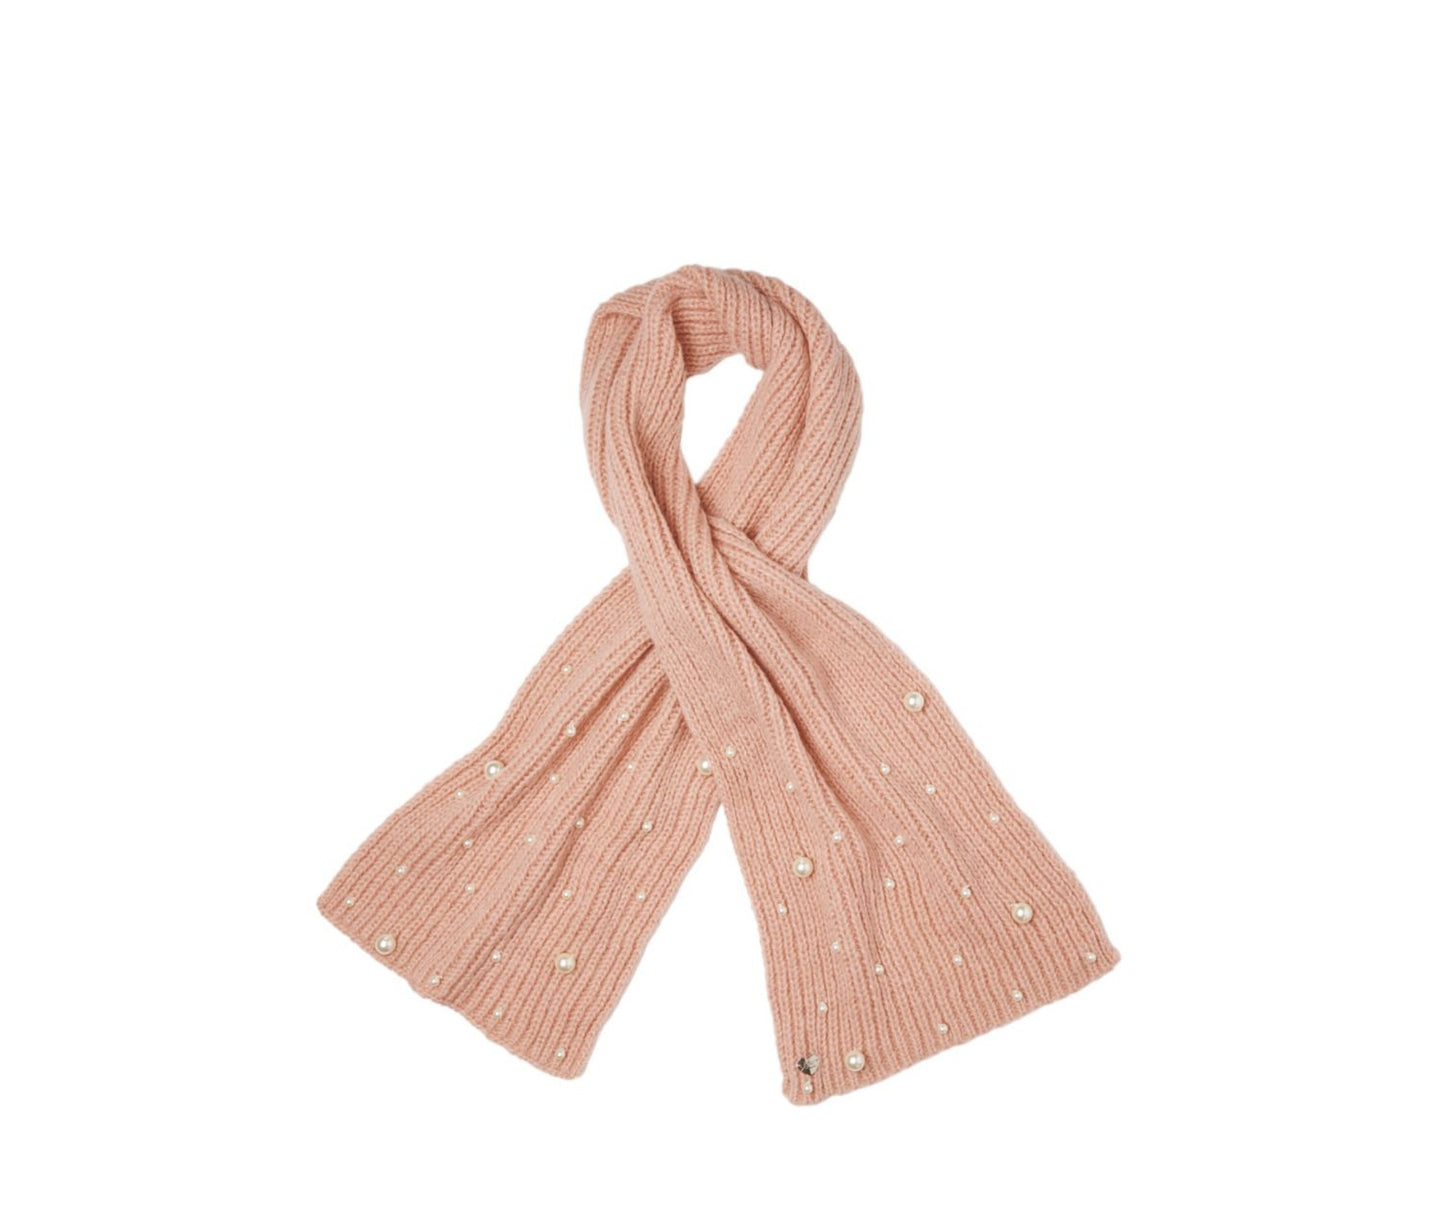 PEARL JAM MUFFLER BLUSH - ACCESSORIES - Betsey Johnson